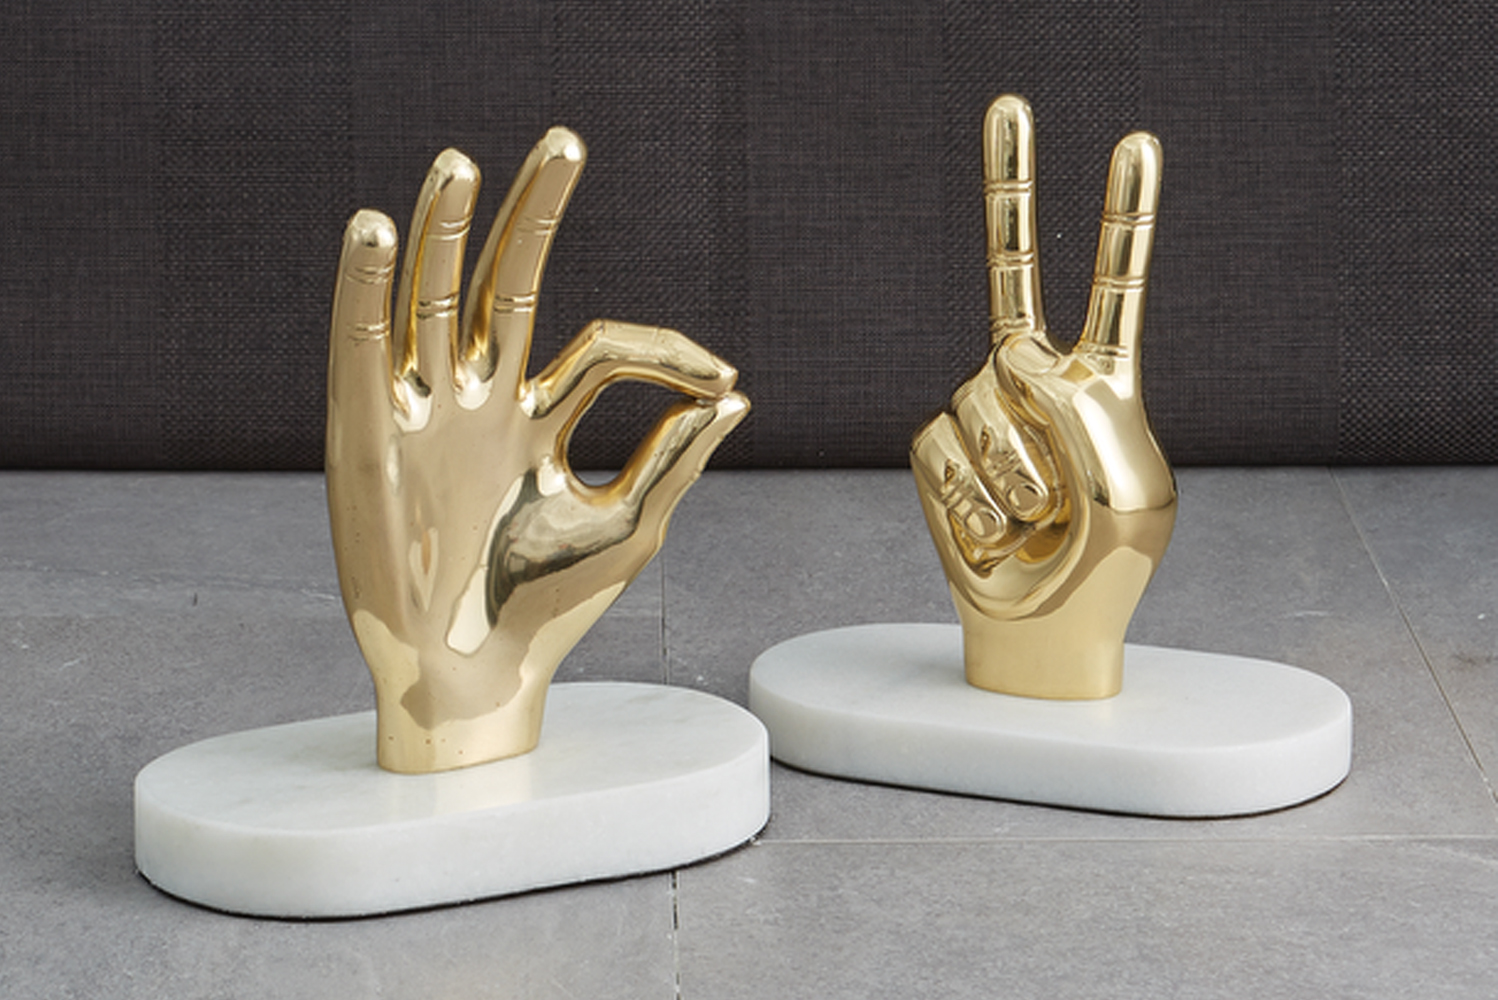 The Peace accessory is a hand sculpture forming a peace sign. Made from gold-finished aluminum and white marble, it adds a splash of metallic color to any space.